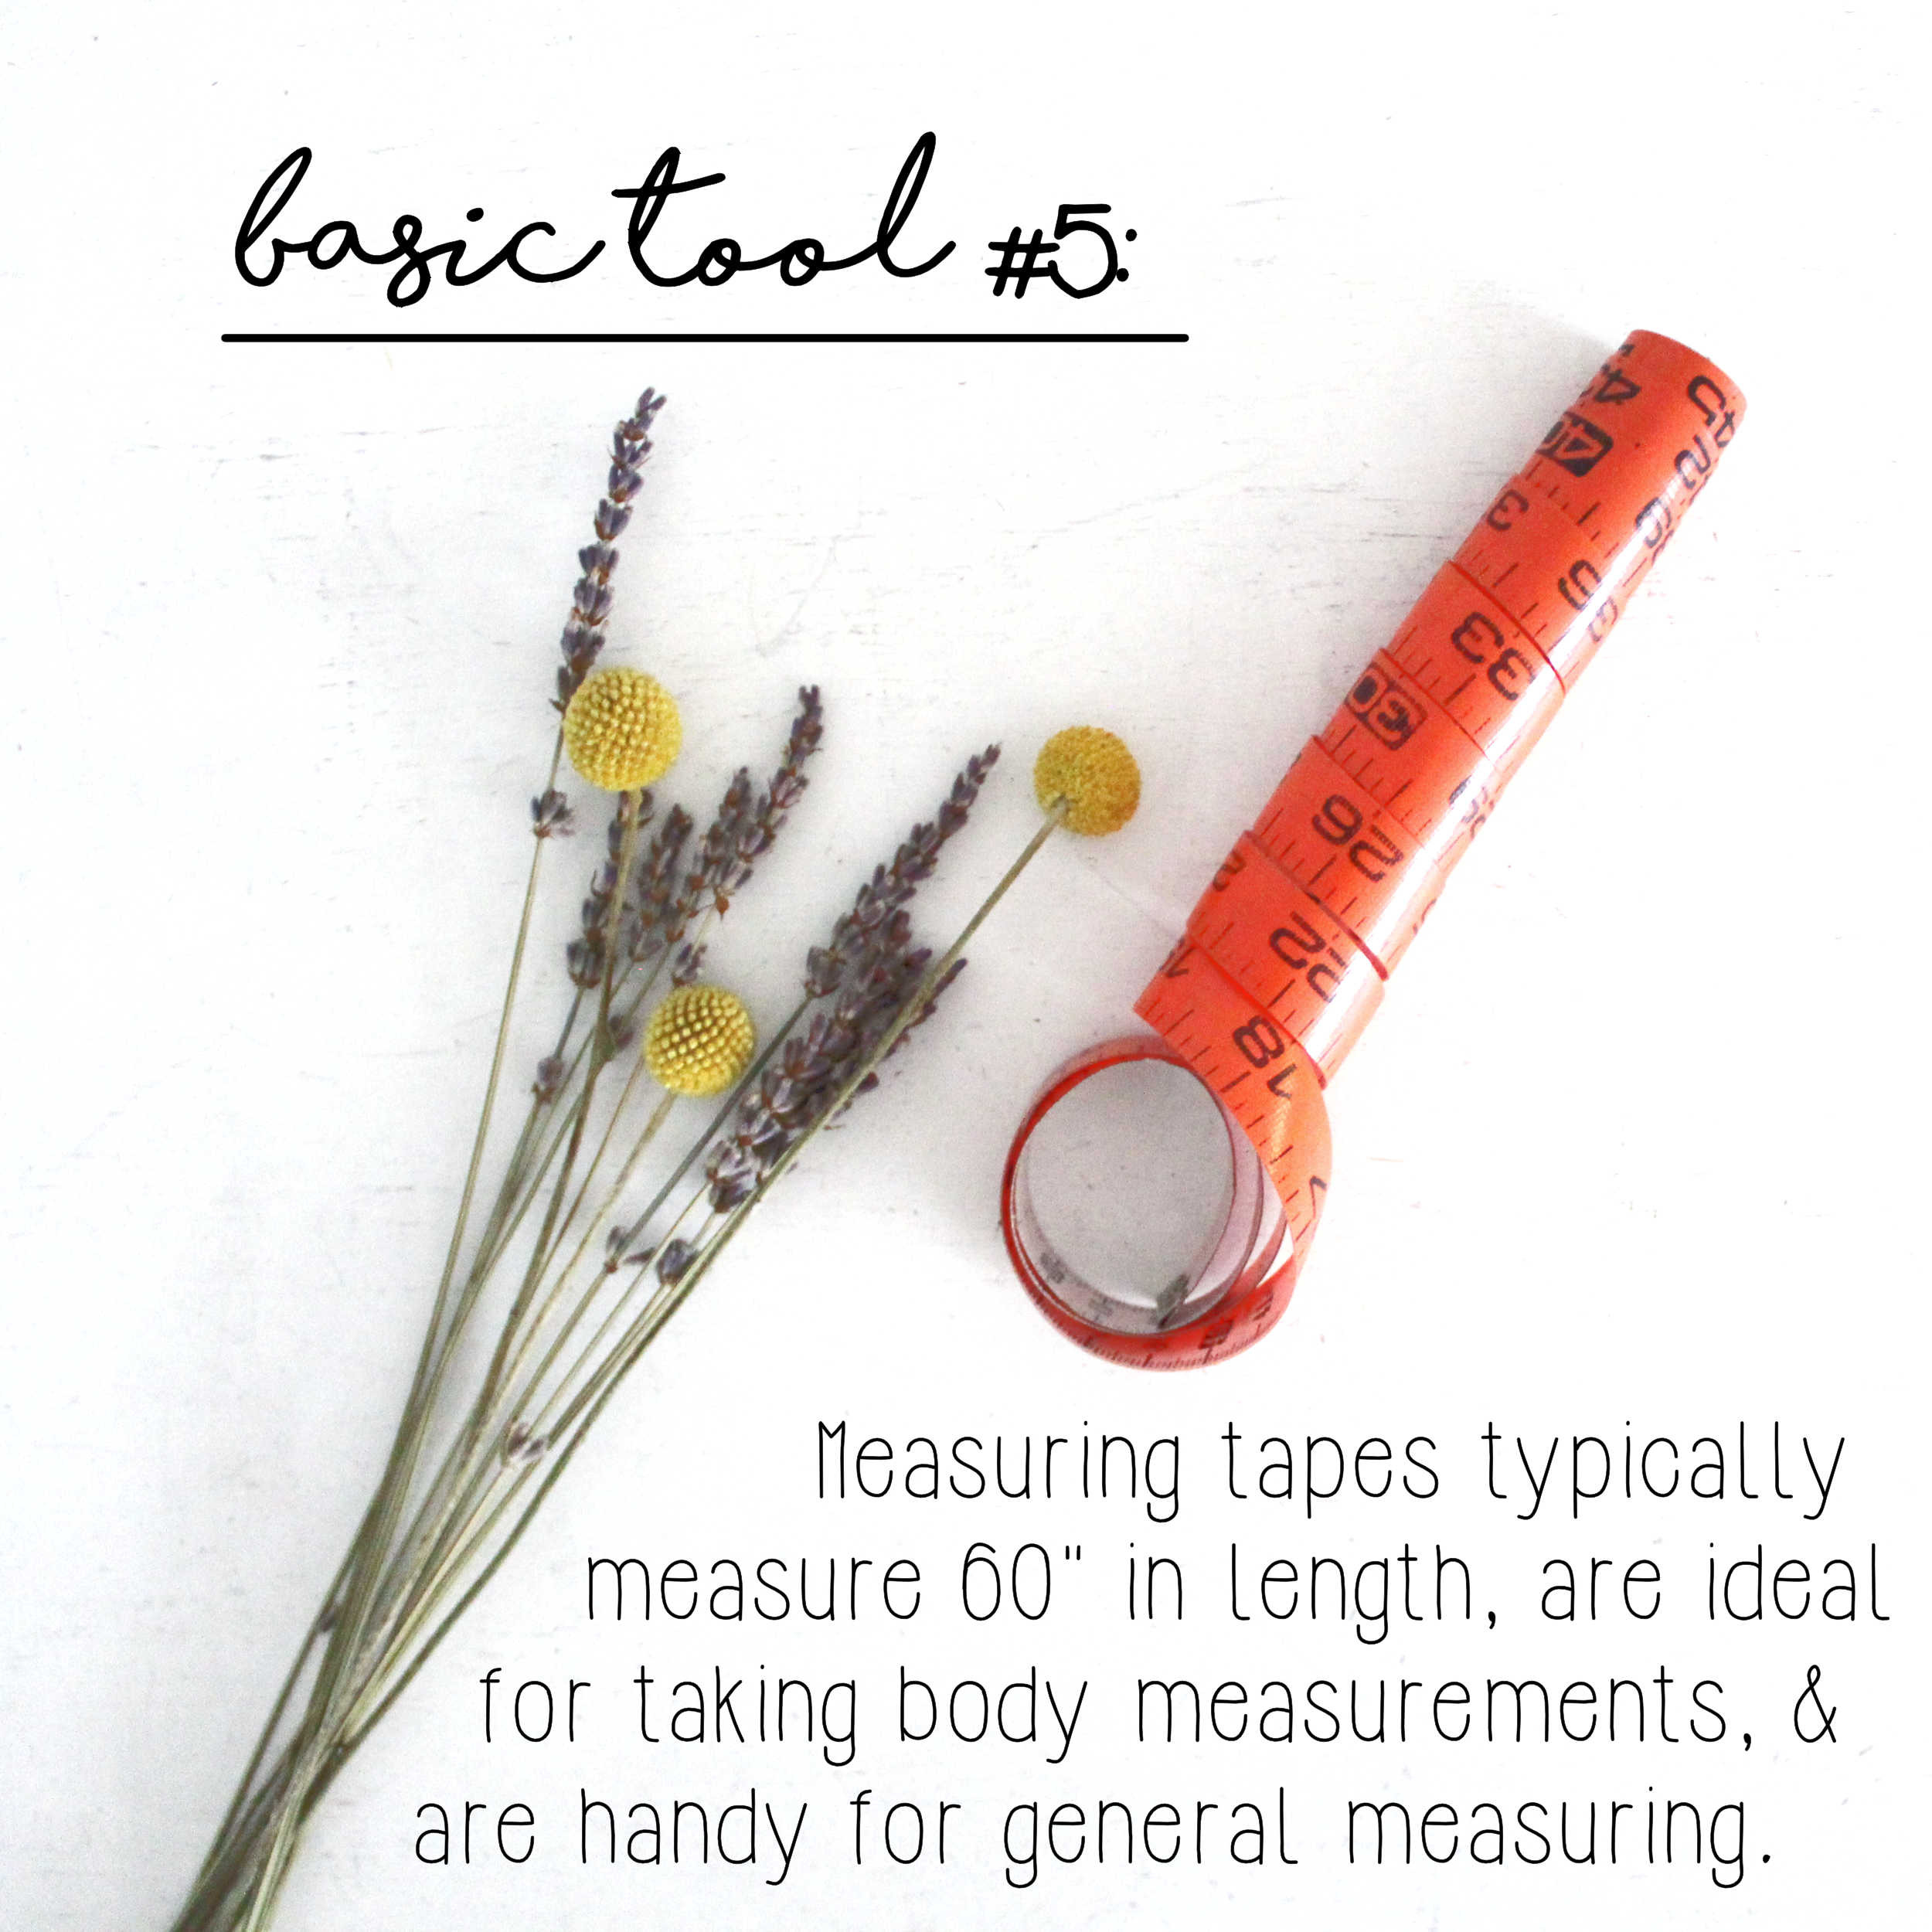 How To Build A Sewing Kit: Basic Tool #5, Measuring Tape